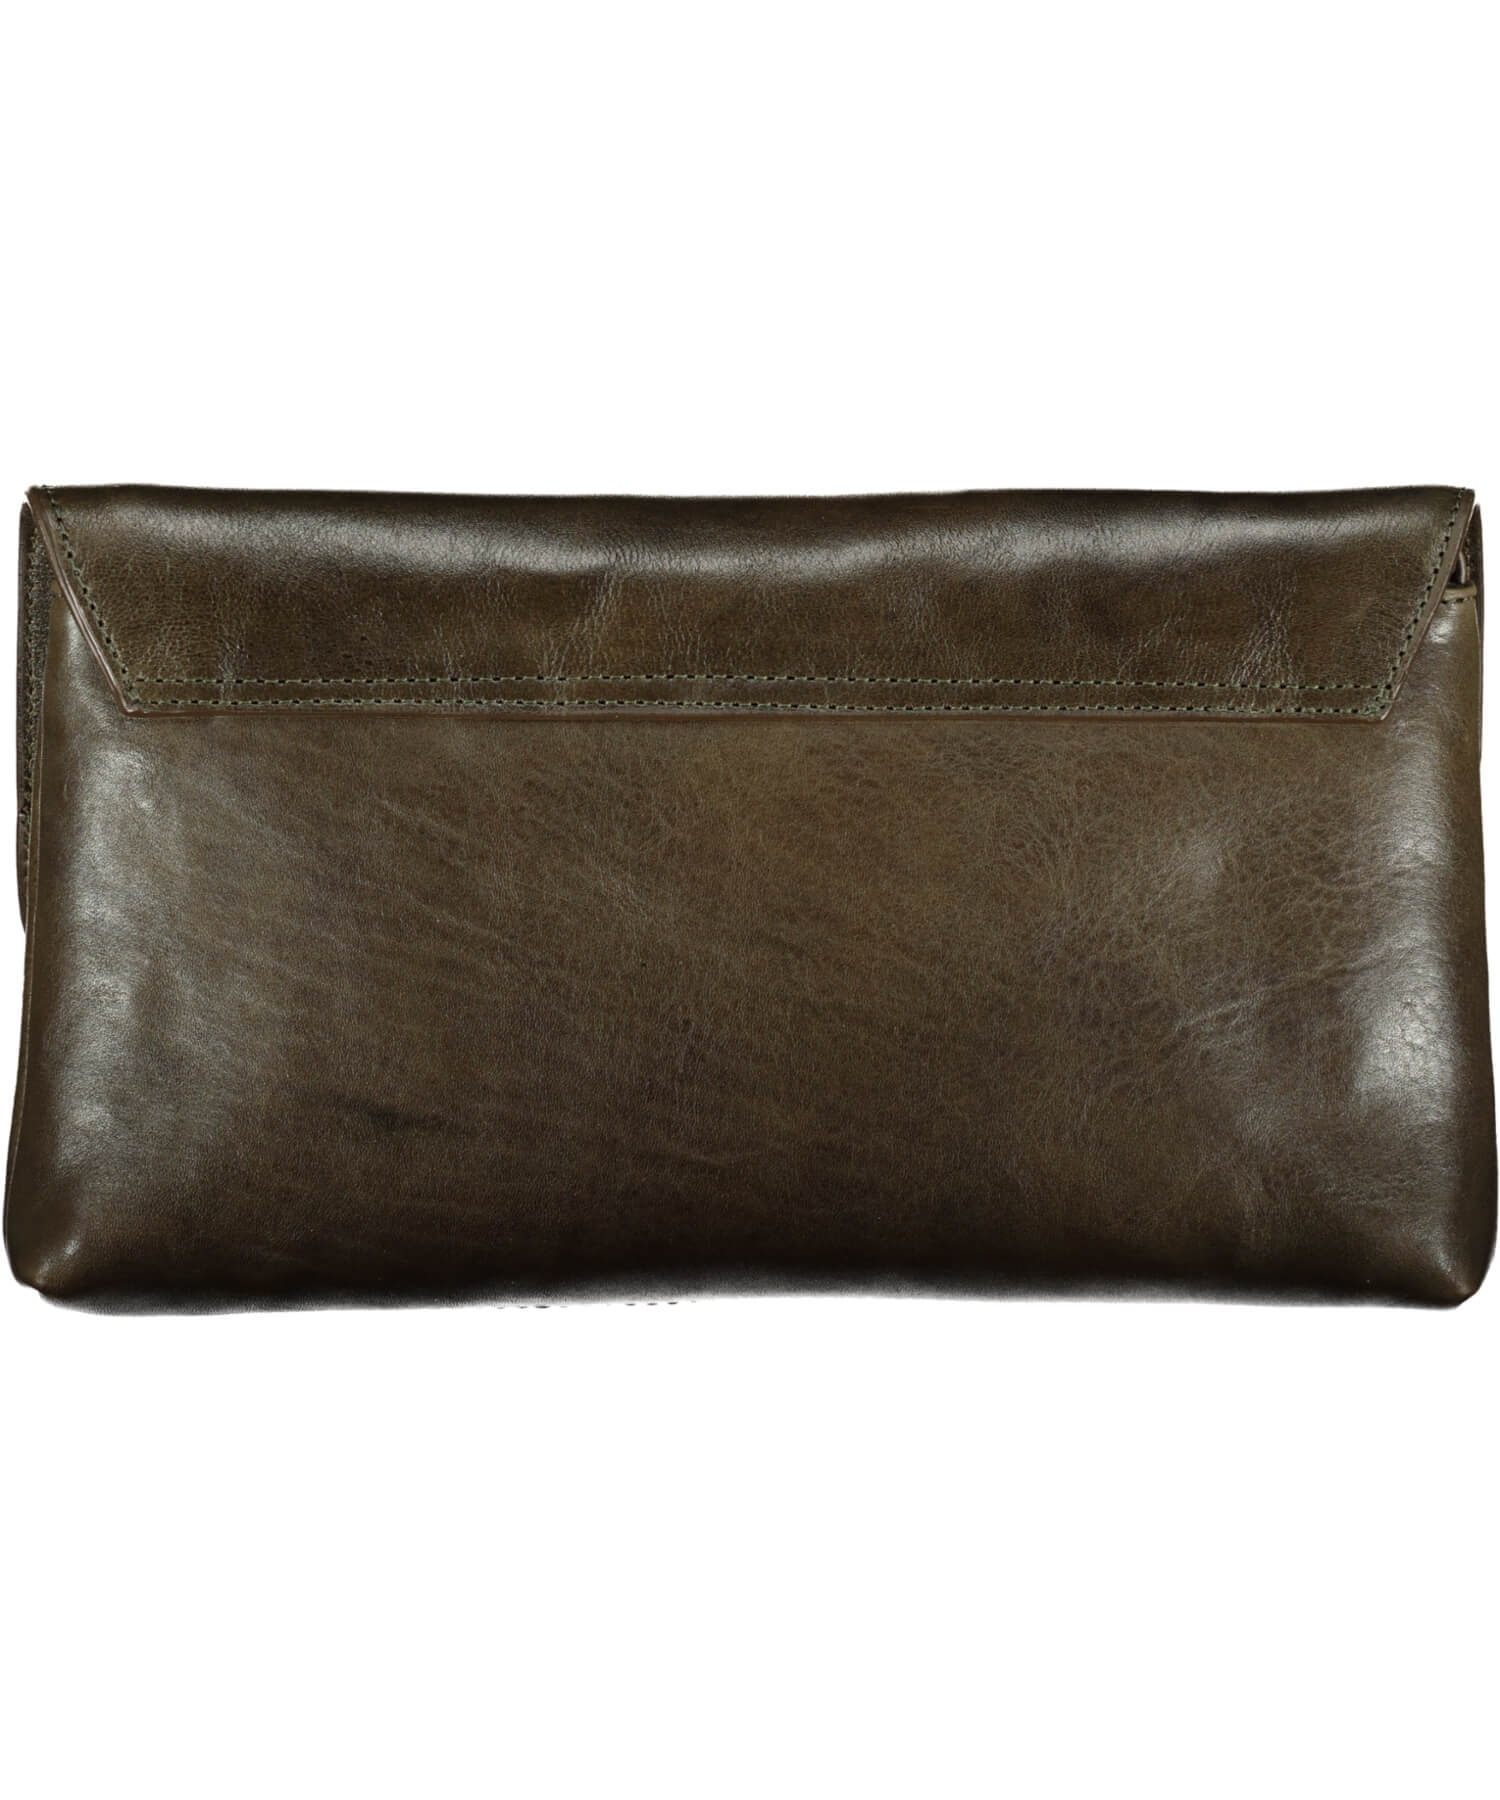 Ciara Clutch Bag - Green - [Lee River] - Bags, Purses & Wallets - Irish Gifts